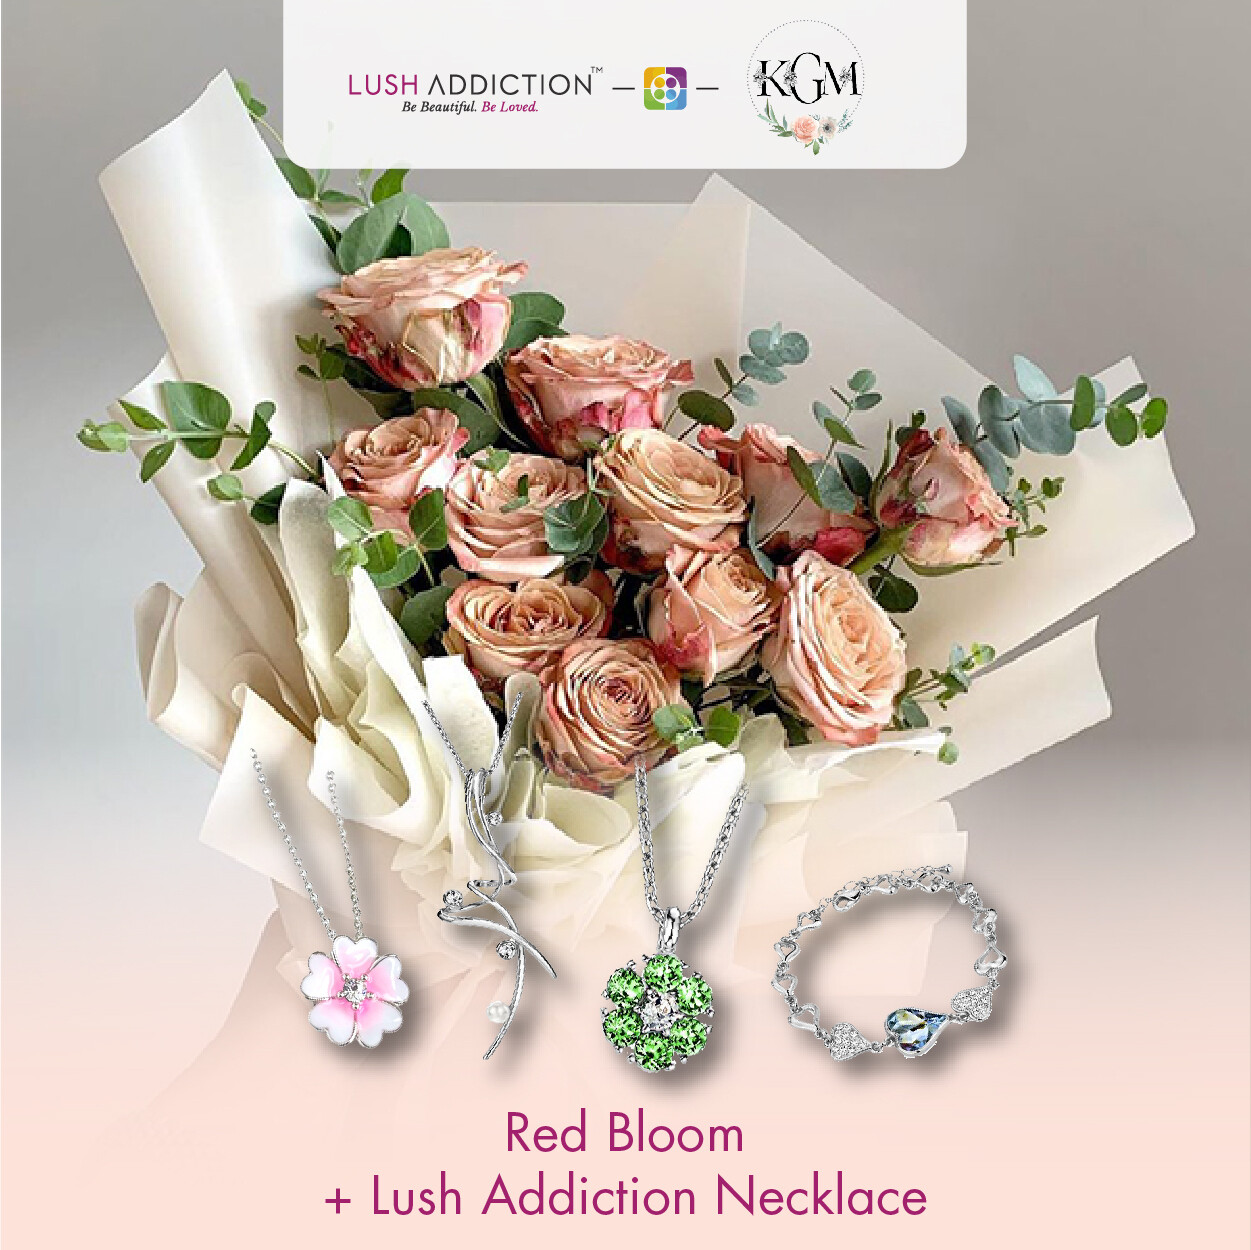 Red Bloom  + Lush Addiction Necklace (By: Keshwini Florist from KL